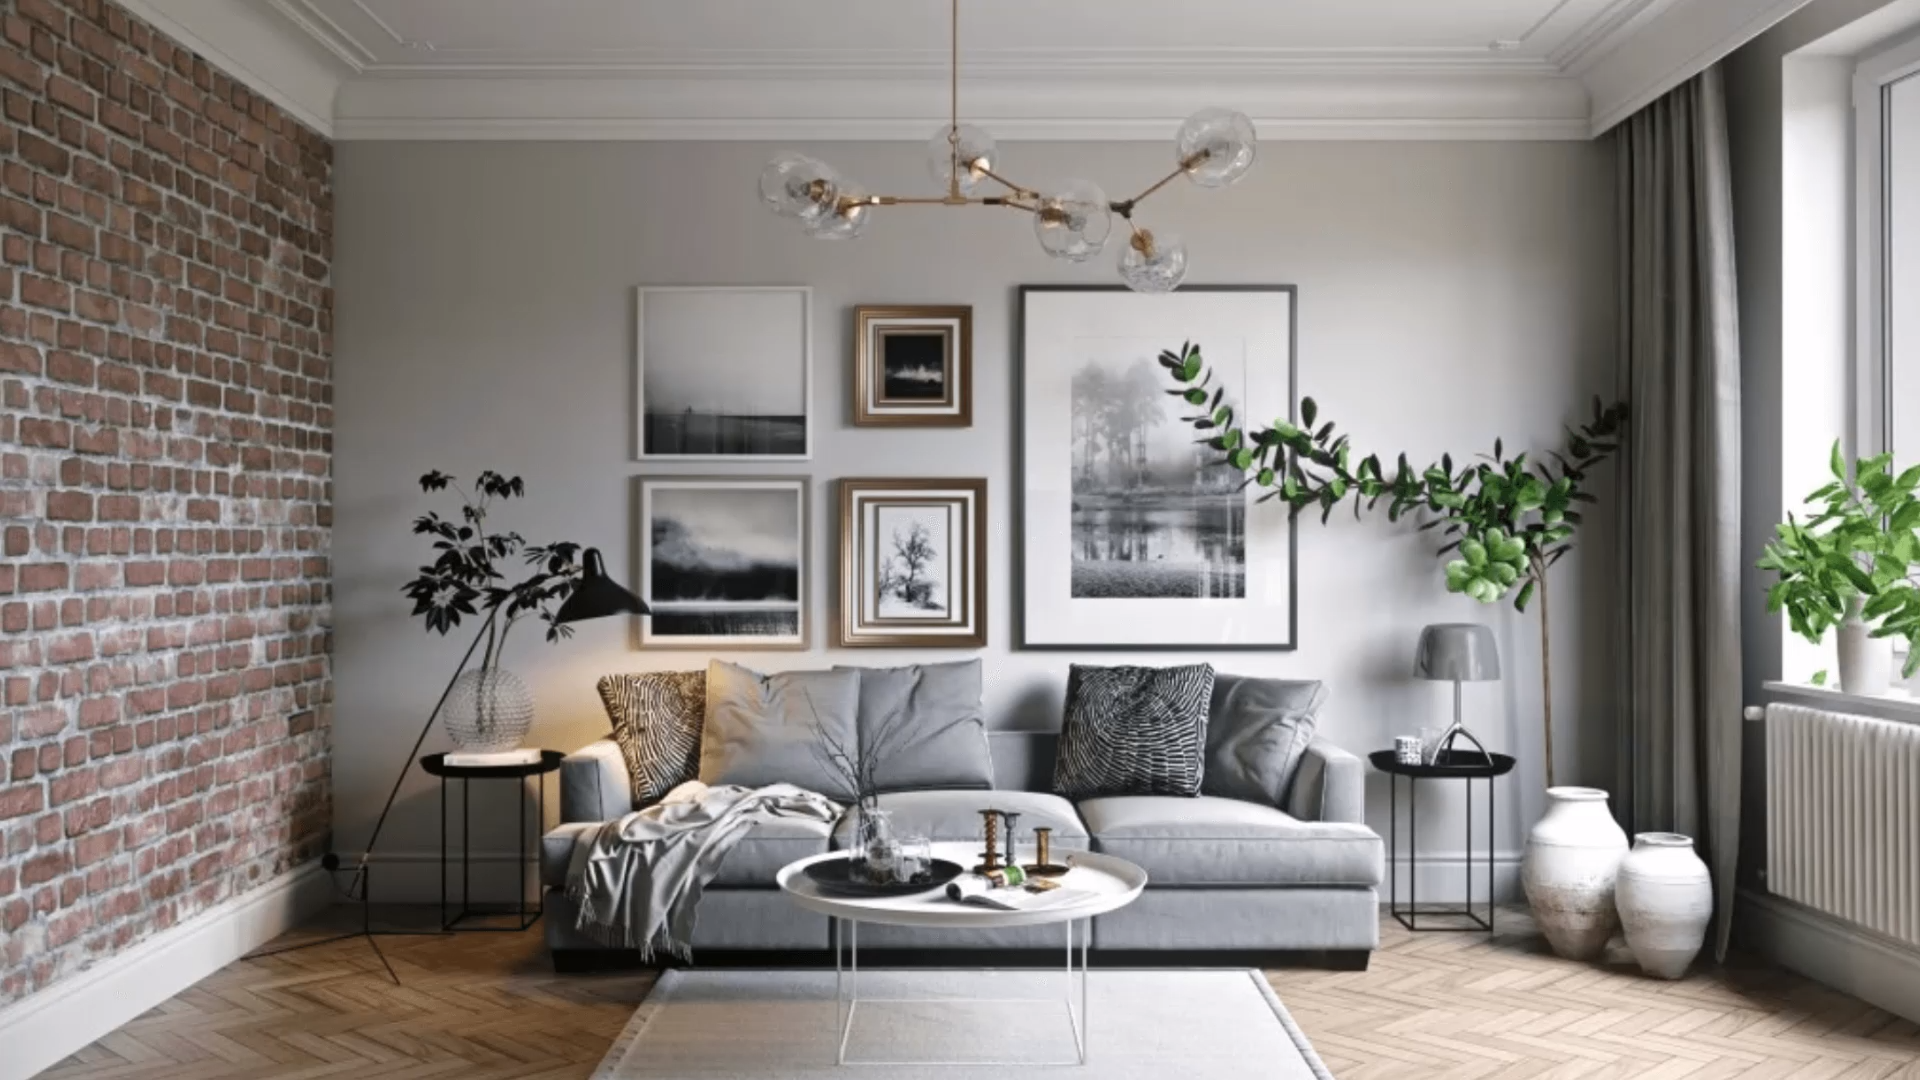 Modern Interior Design: 10 Best Tips for Creating Beautiful Interiors